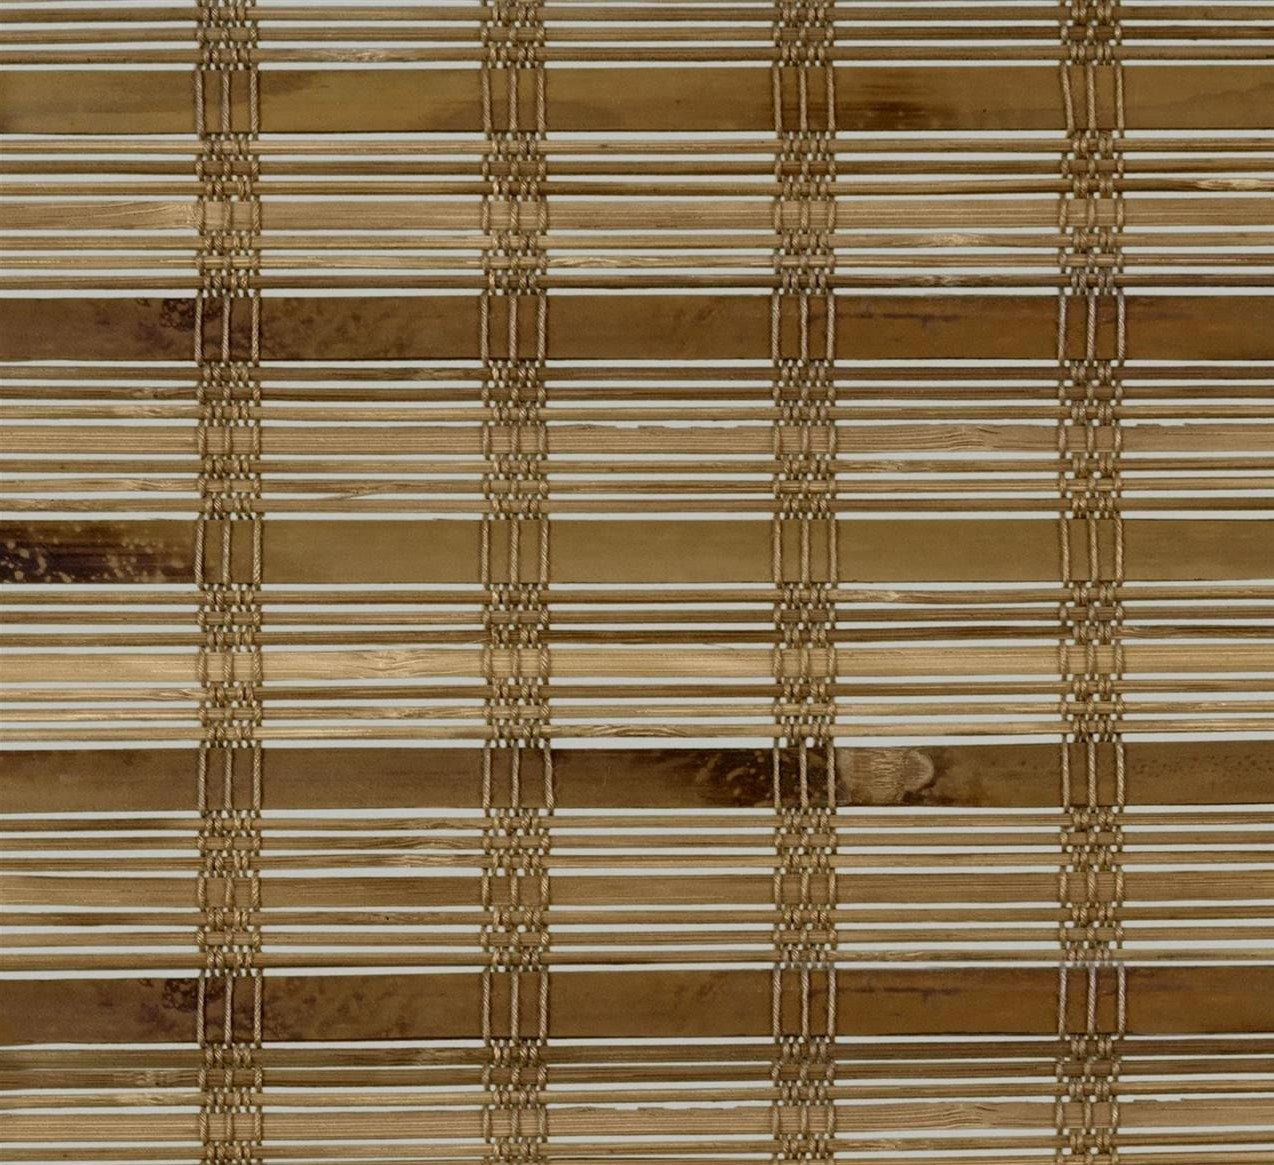 "Arlo Blinds Dali Native Cordless Bamboo Blinds - Sample Swatch only, only Approximately 4"" x 6"", not a Working Shades Blinds, for You to Review The Color and Pattern Before Ordering Bamboo Shades"